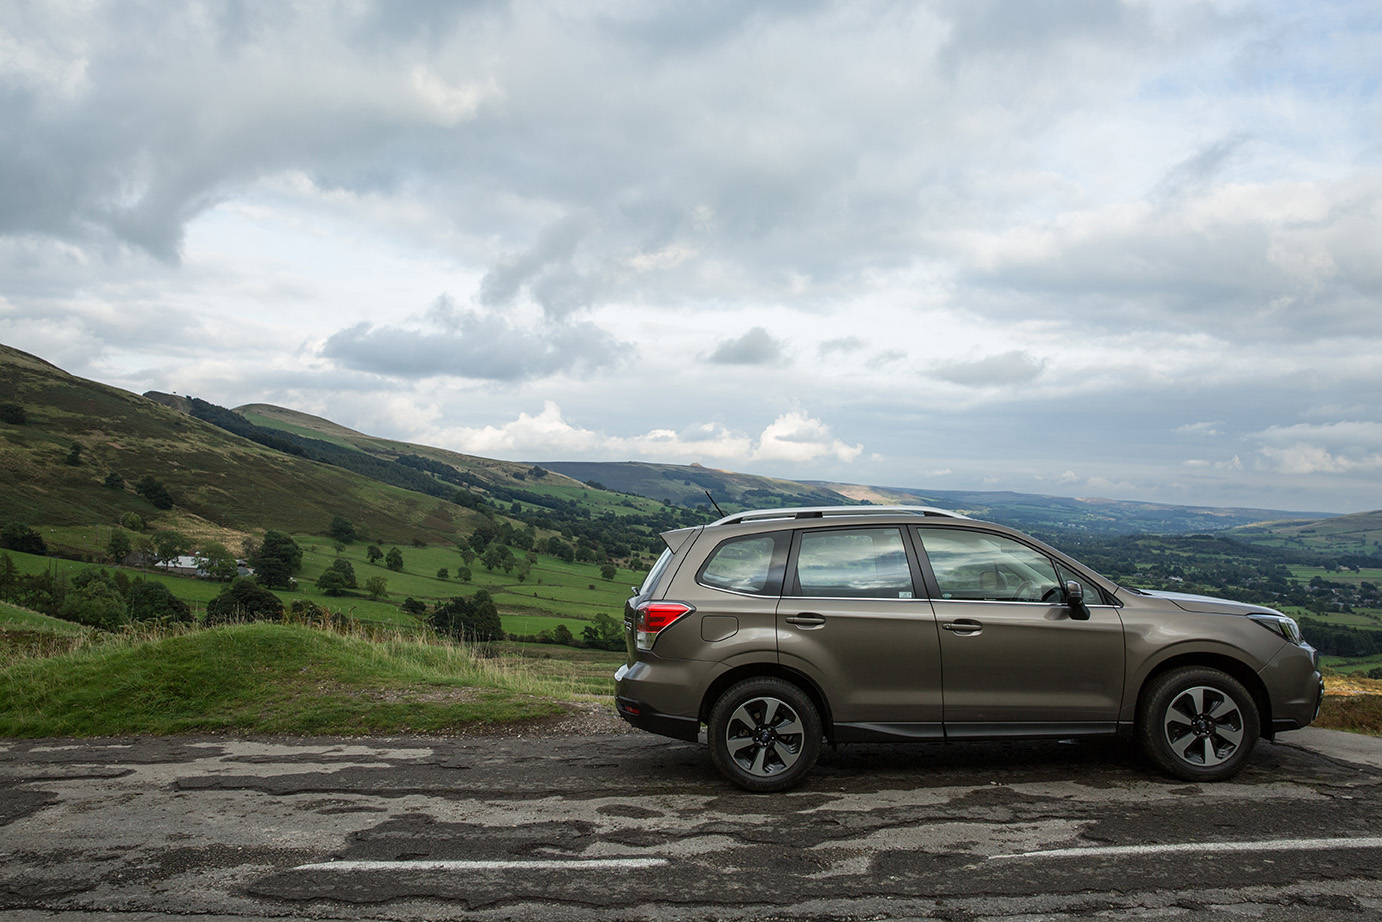 The Outback is well suited to a rural environment